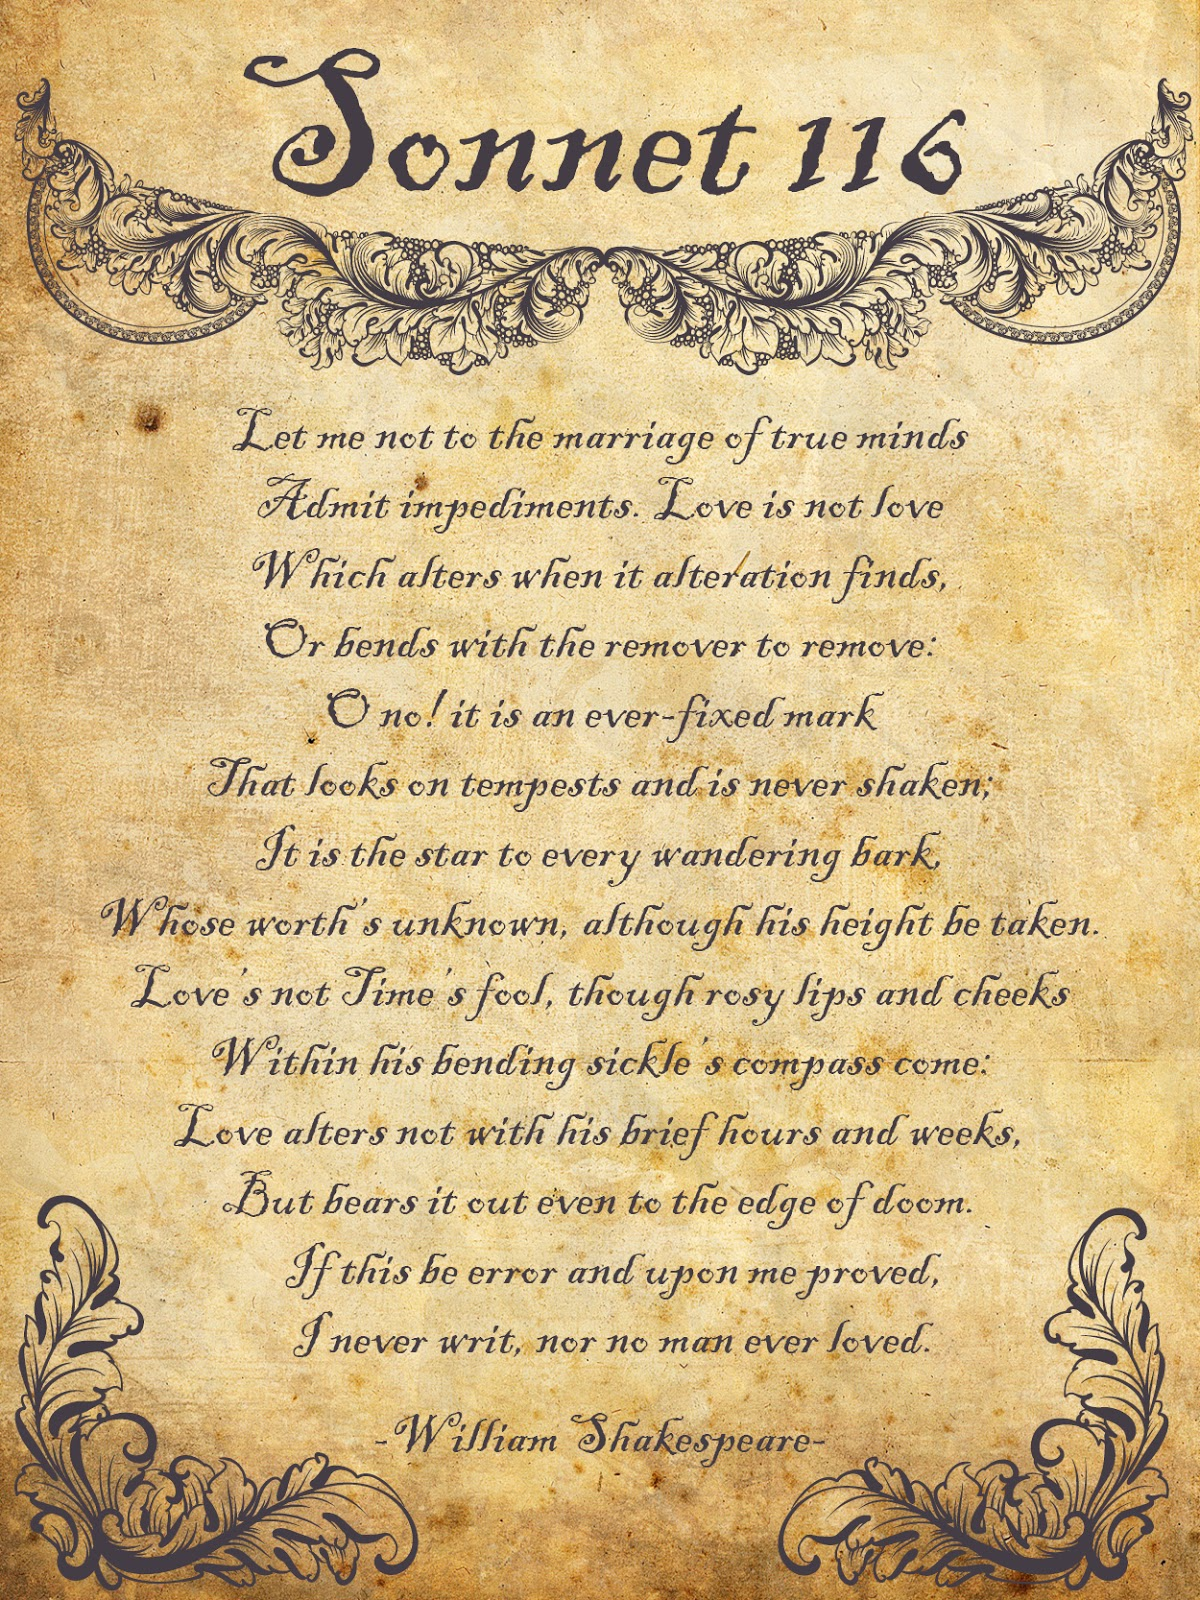 Sonnet Cxiv - Poem by William Shakespeare